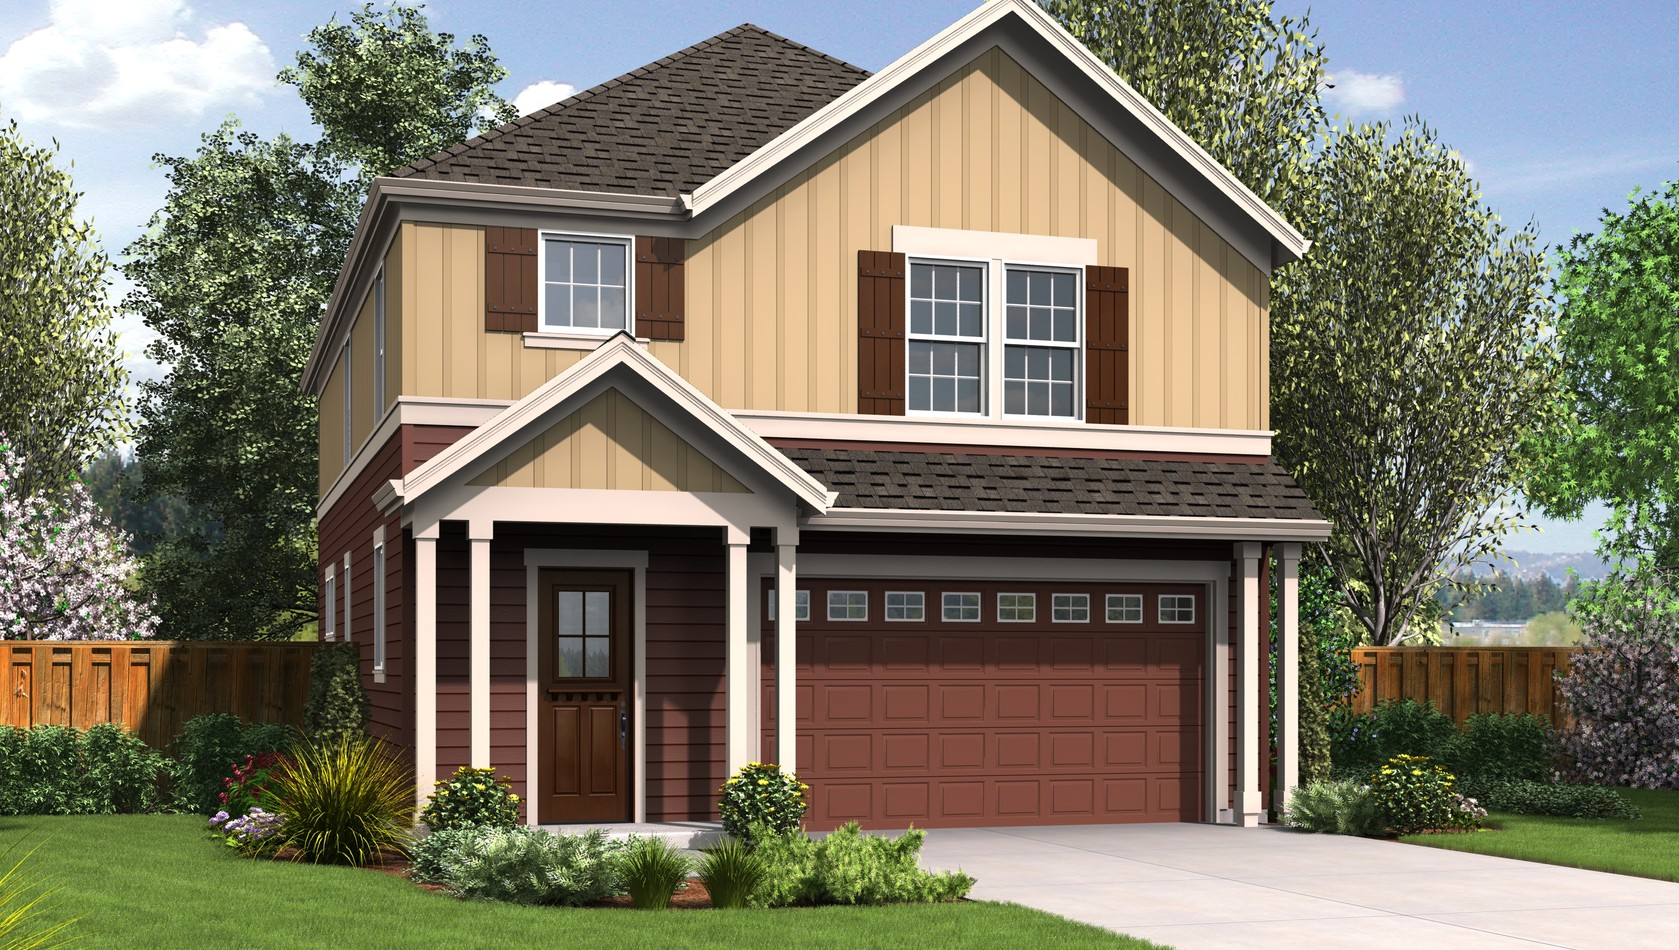 Main image for house plan 22195: The Melville